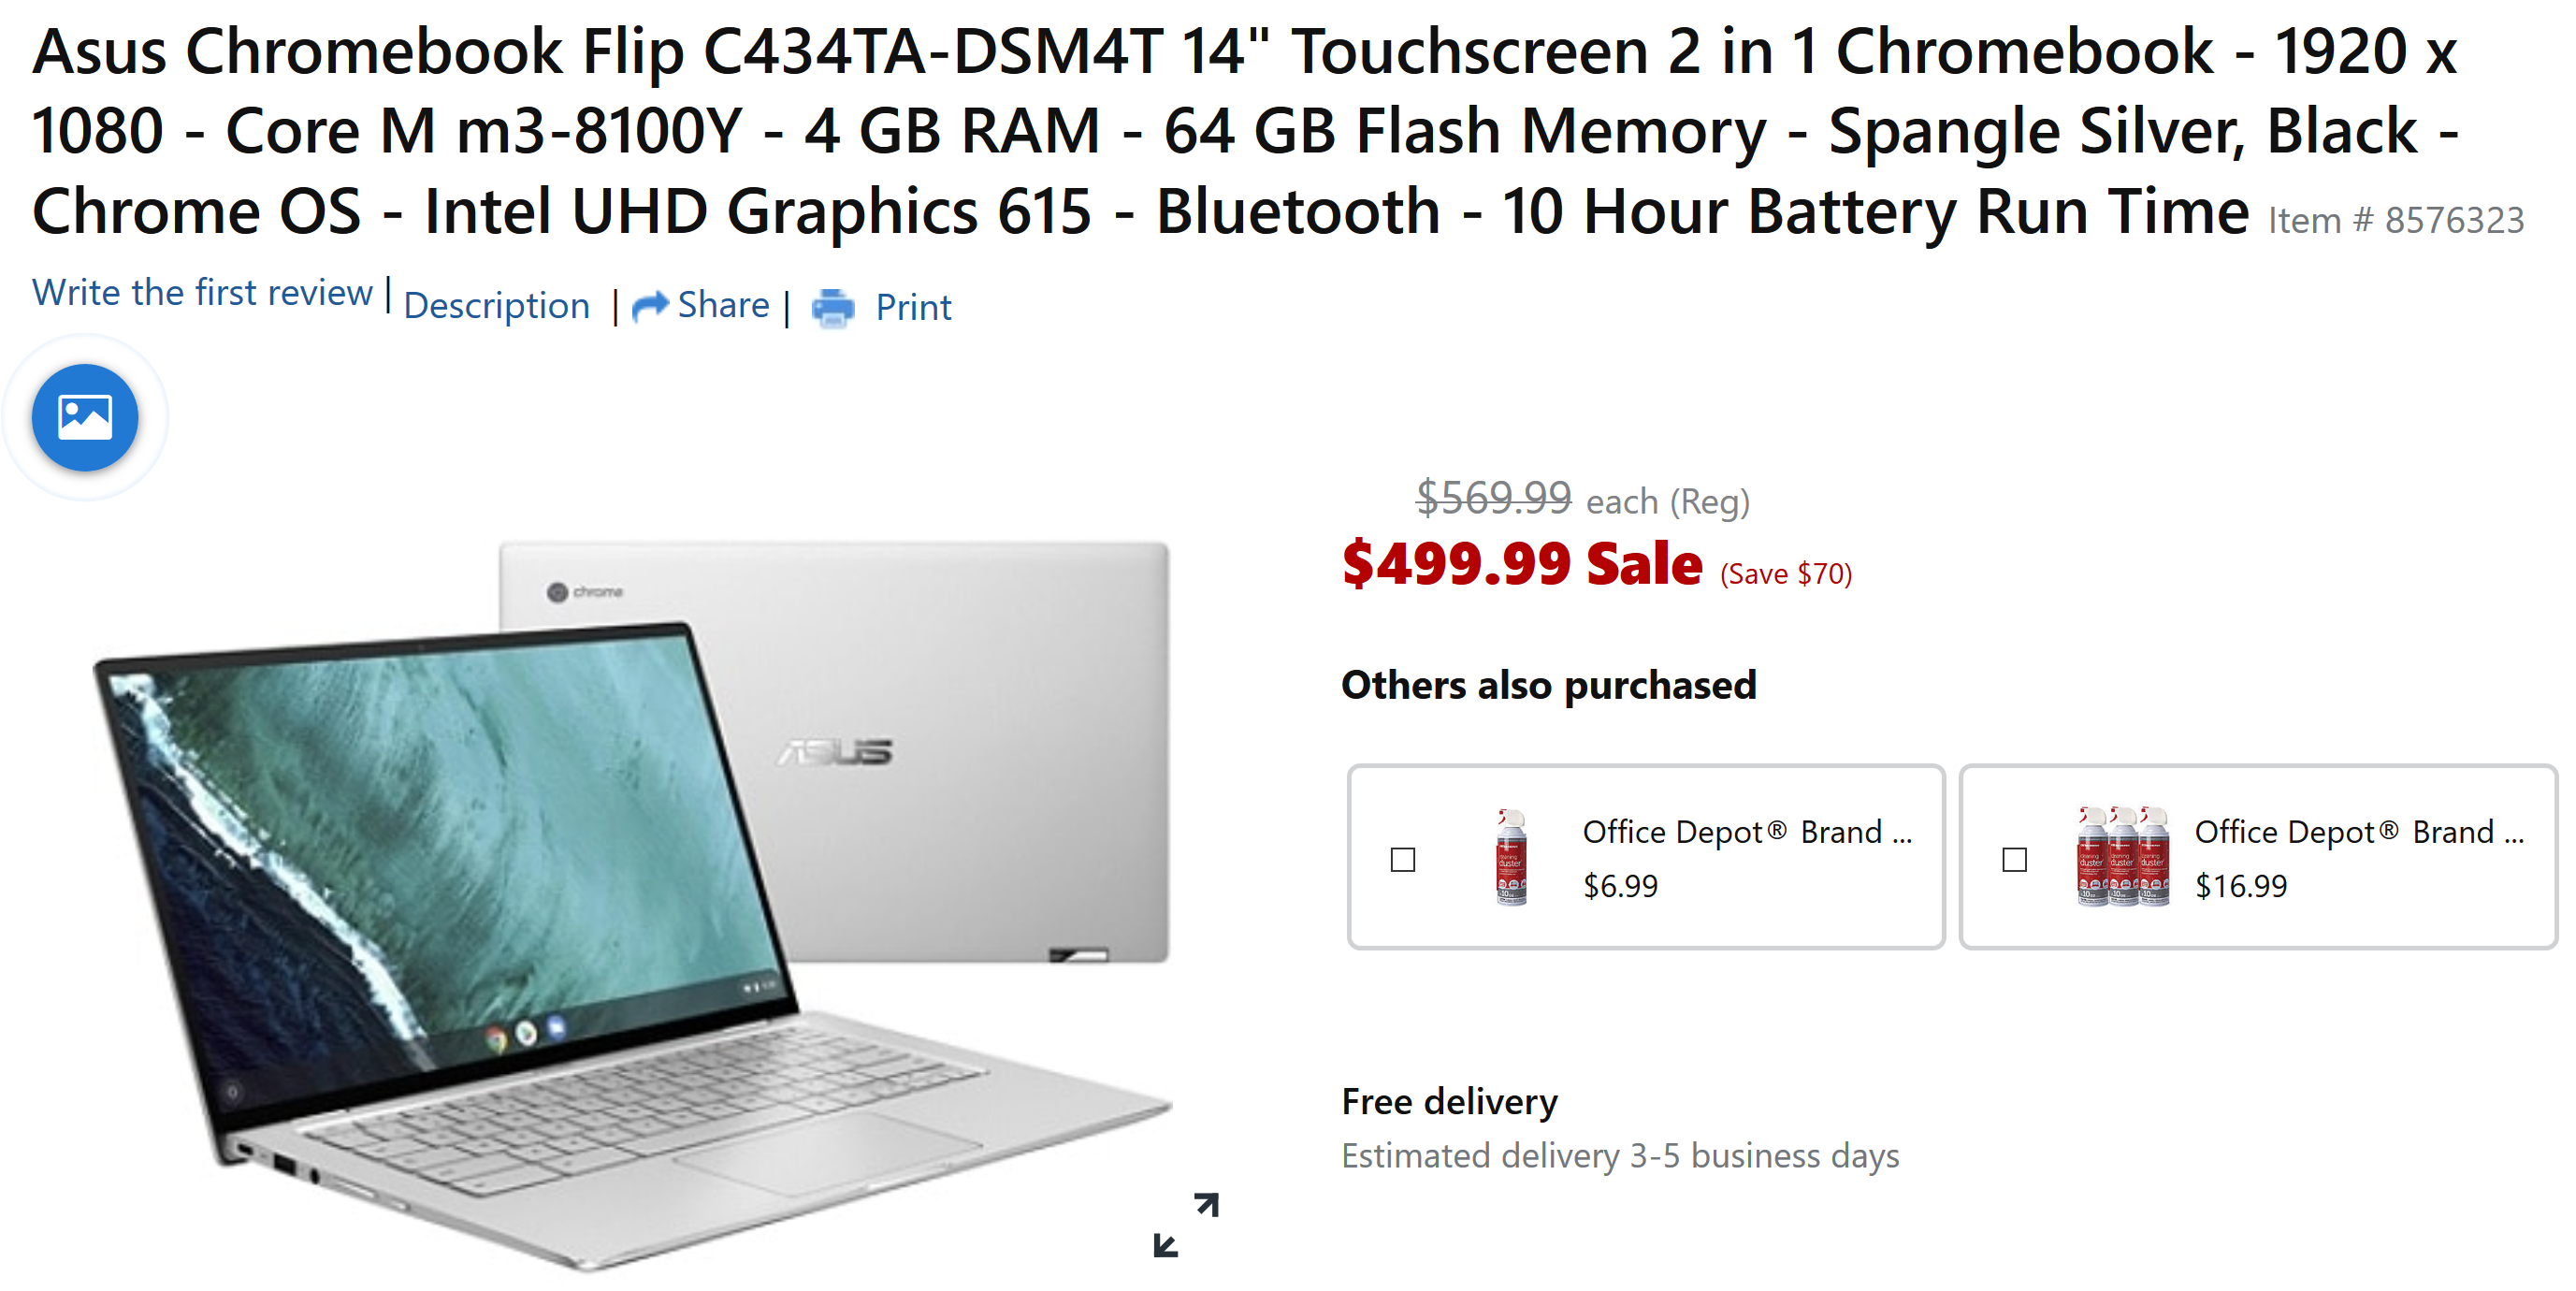 Asus Chromebook Flip C434 drops to $500 ($70 off) at Office